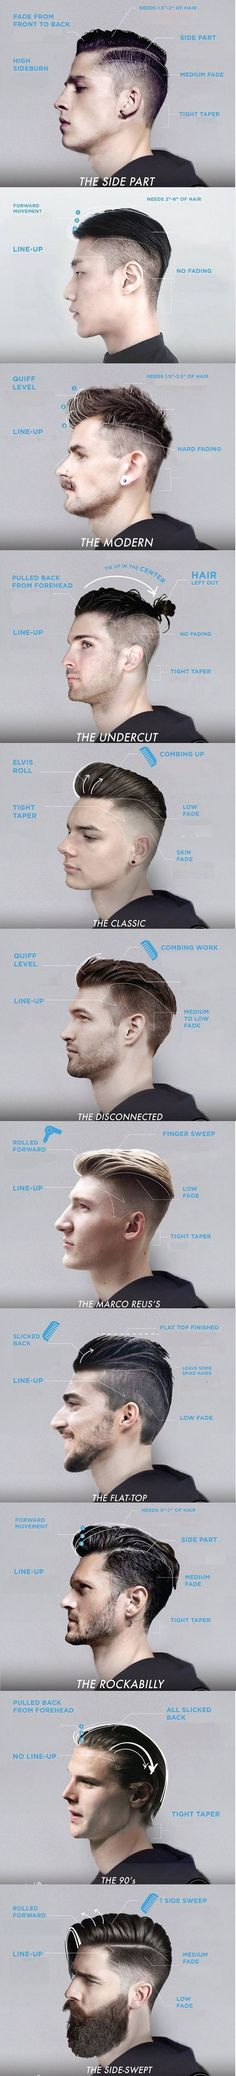 cool Trendy Hair Styling for Men With Undercut 2016...